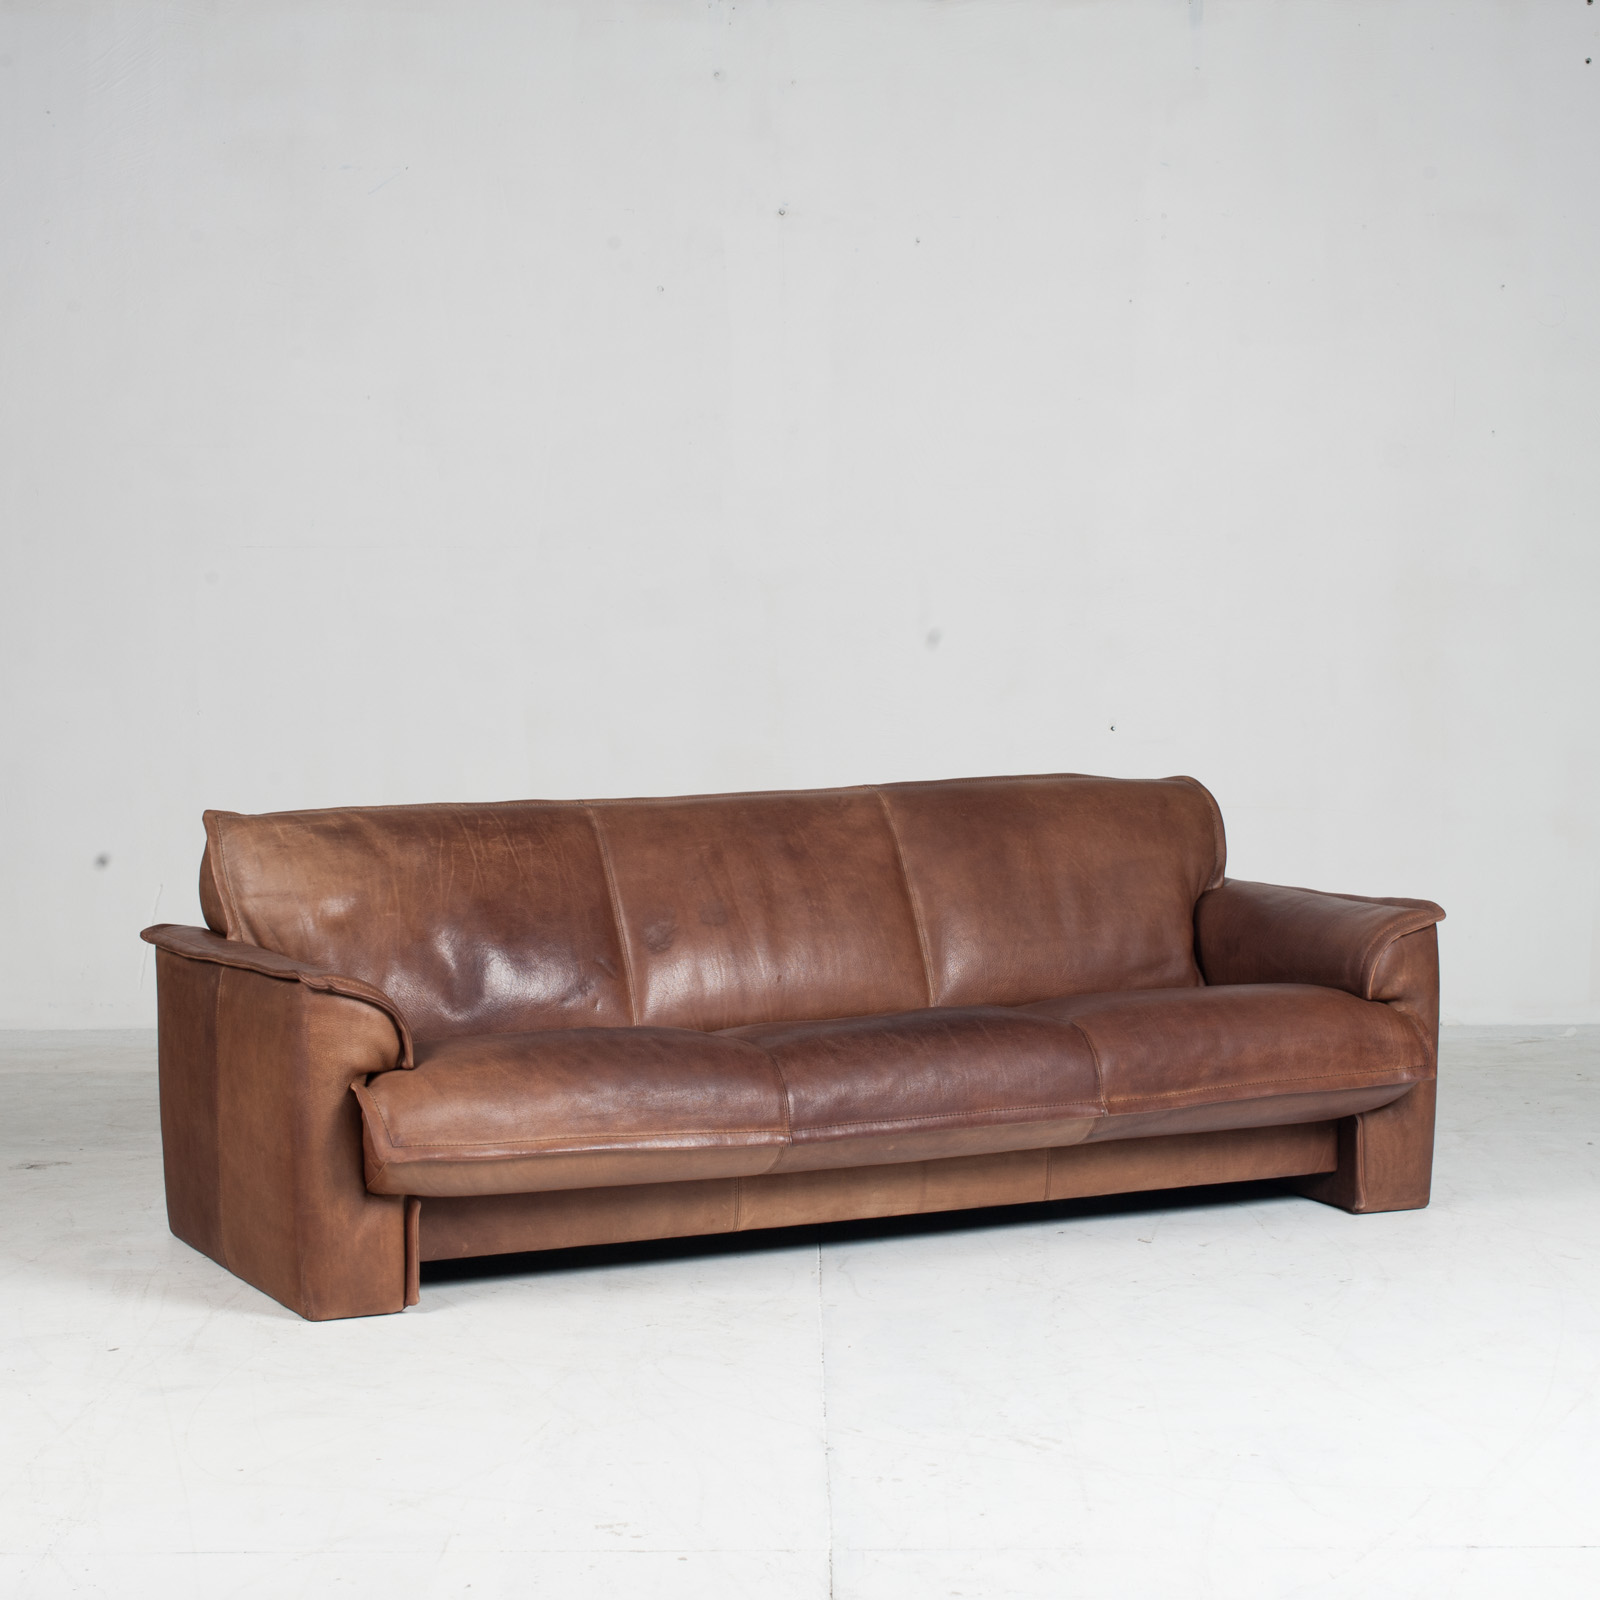 3 Seat Sofa By De Sede In Tan Neck Leather 1960s Denmark 02 2